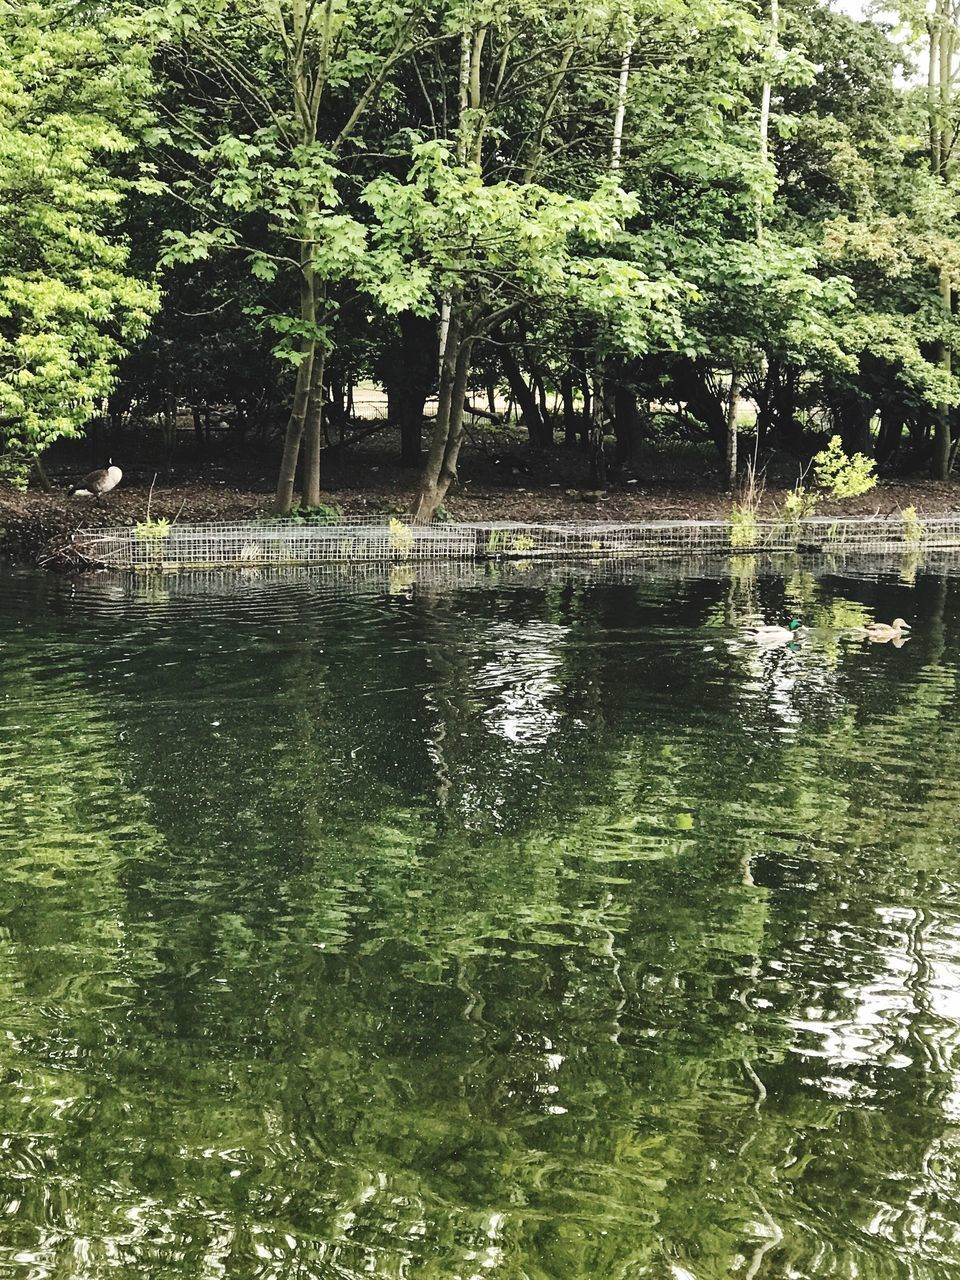 water, nature, lake, reflection, tree, forest, growth, outdoors, adventure, no people, beauty in nature, day